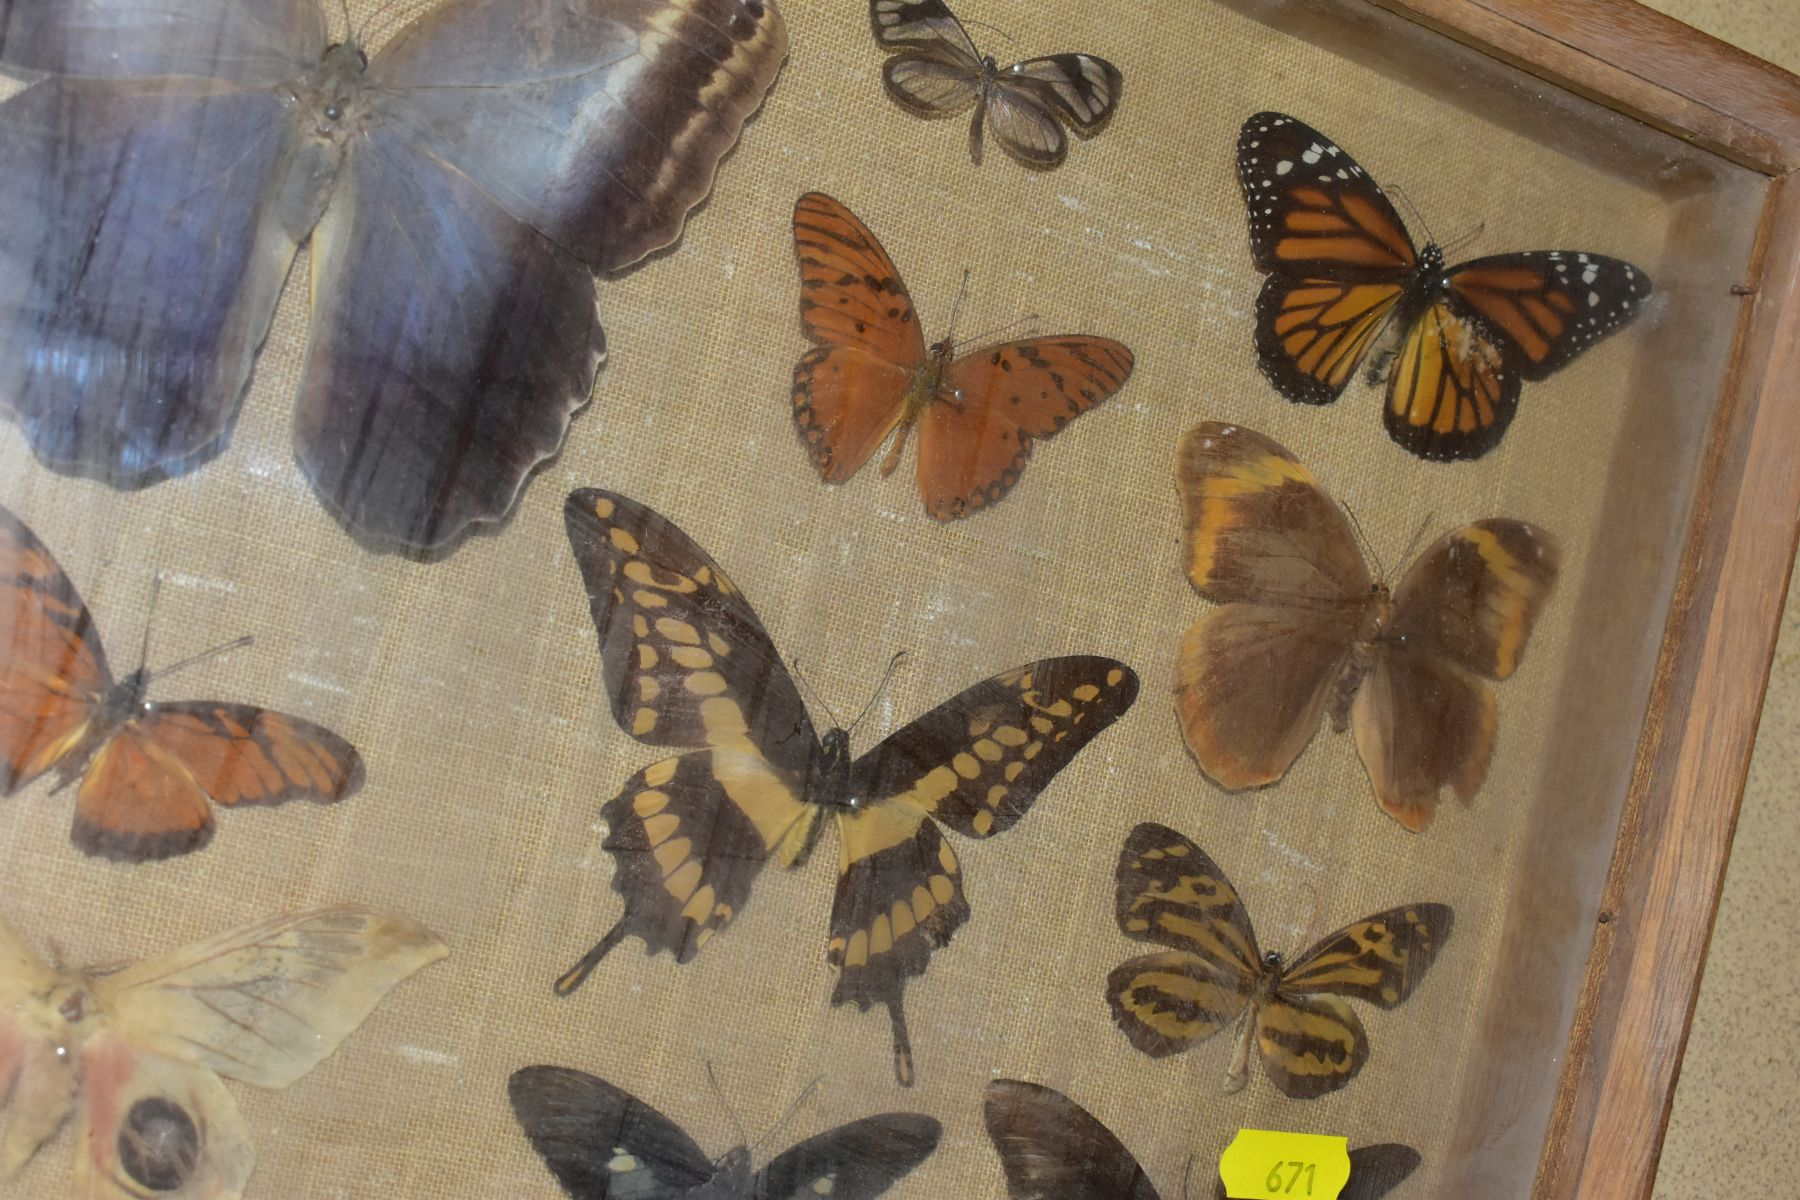 THREE DISPLAY CASES CONTAINING BUTTERFLIES AND MOTH SPECIMENS, together with four circular framed - Image 10 of 10